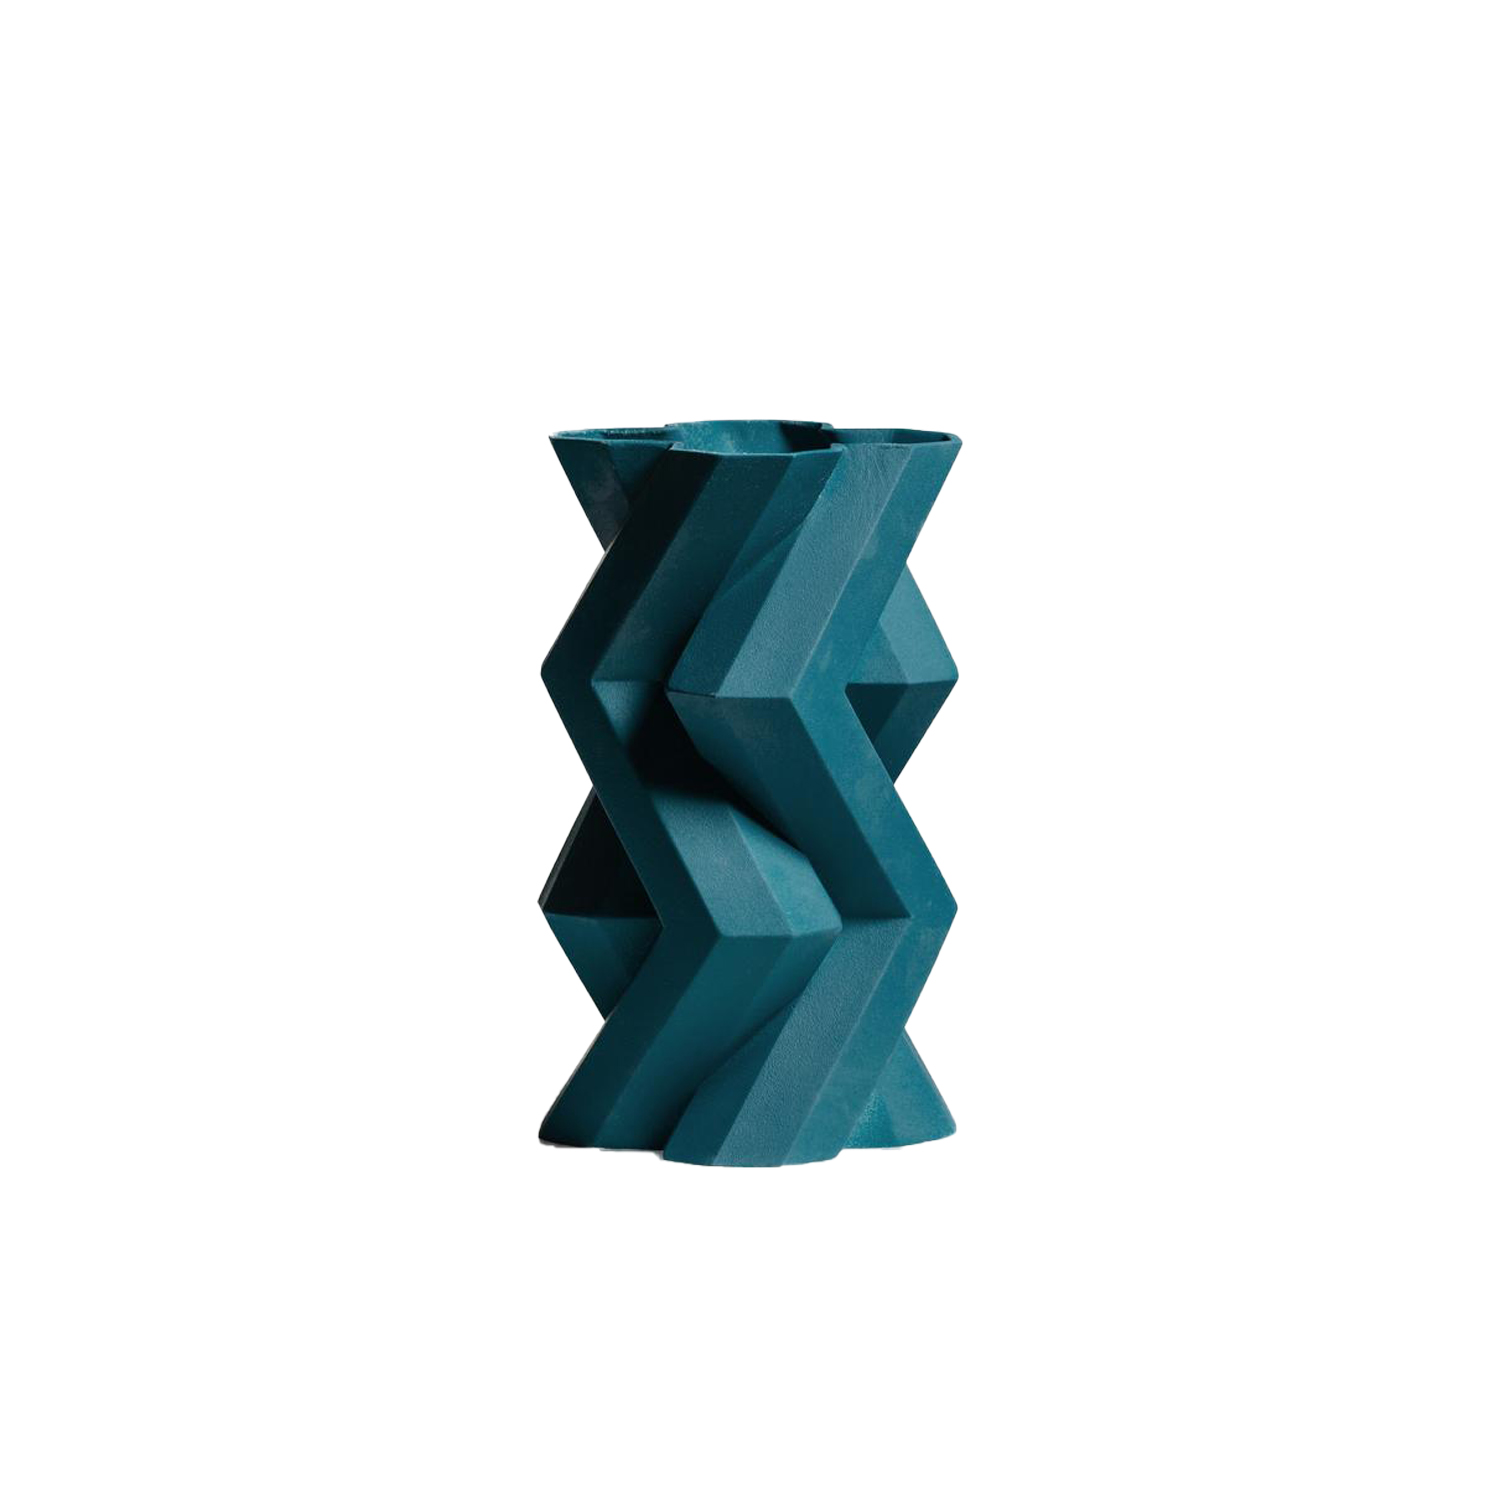 Fortress Tower Vase Blue - Designer Lara Bohinc explores the marriage of ancient and futuristic form in the new Fortress Vase range, which has created a more complex geometric and modern structure from the original inspiration of the octagonal towers at the Diocletian Palace in Croatia. The resulting hexagonal blocks interlock and embrace to allow the play of light and shade on the many surfaces and angles. There are four Fortress shapes: the larger Column and Castle (45cm height), the Pillar (30cm height) and the Tower vase (37cm height). These are hand made from ceramic in a small Italian artisanal workshop and come in three finishes: dark gold, bronze and speckled white.  | Matter of Stuff